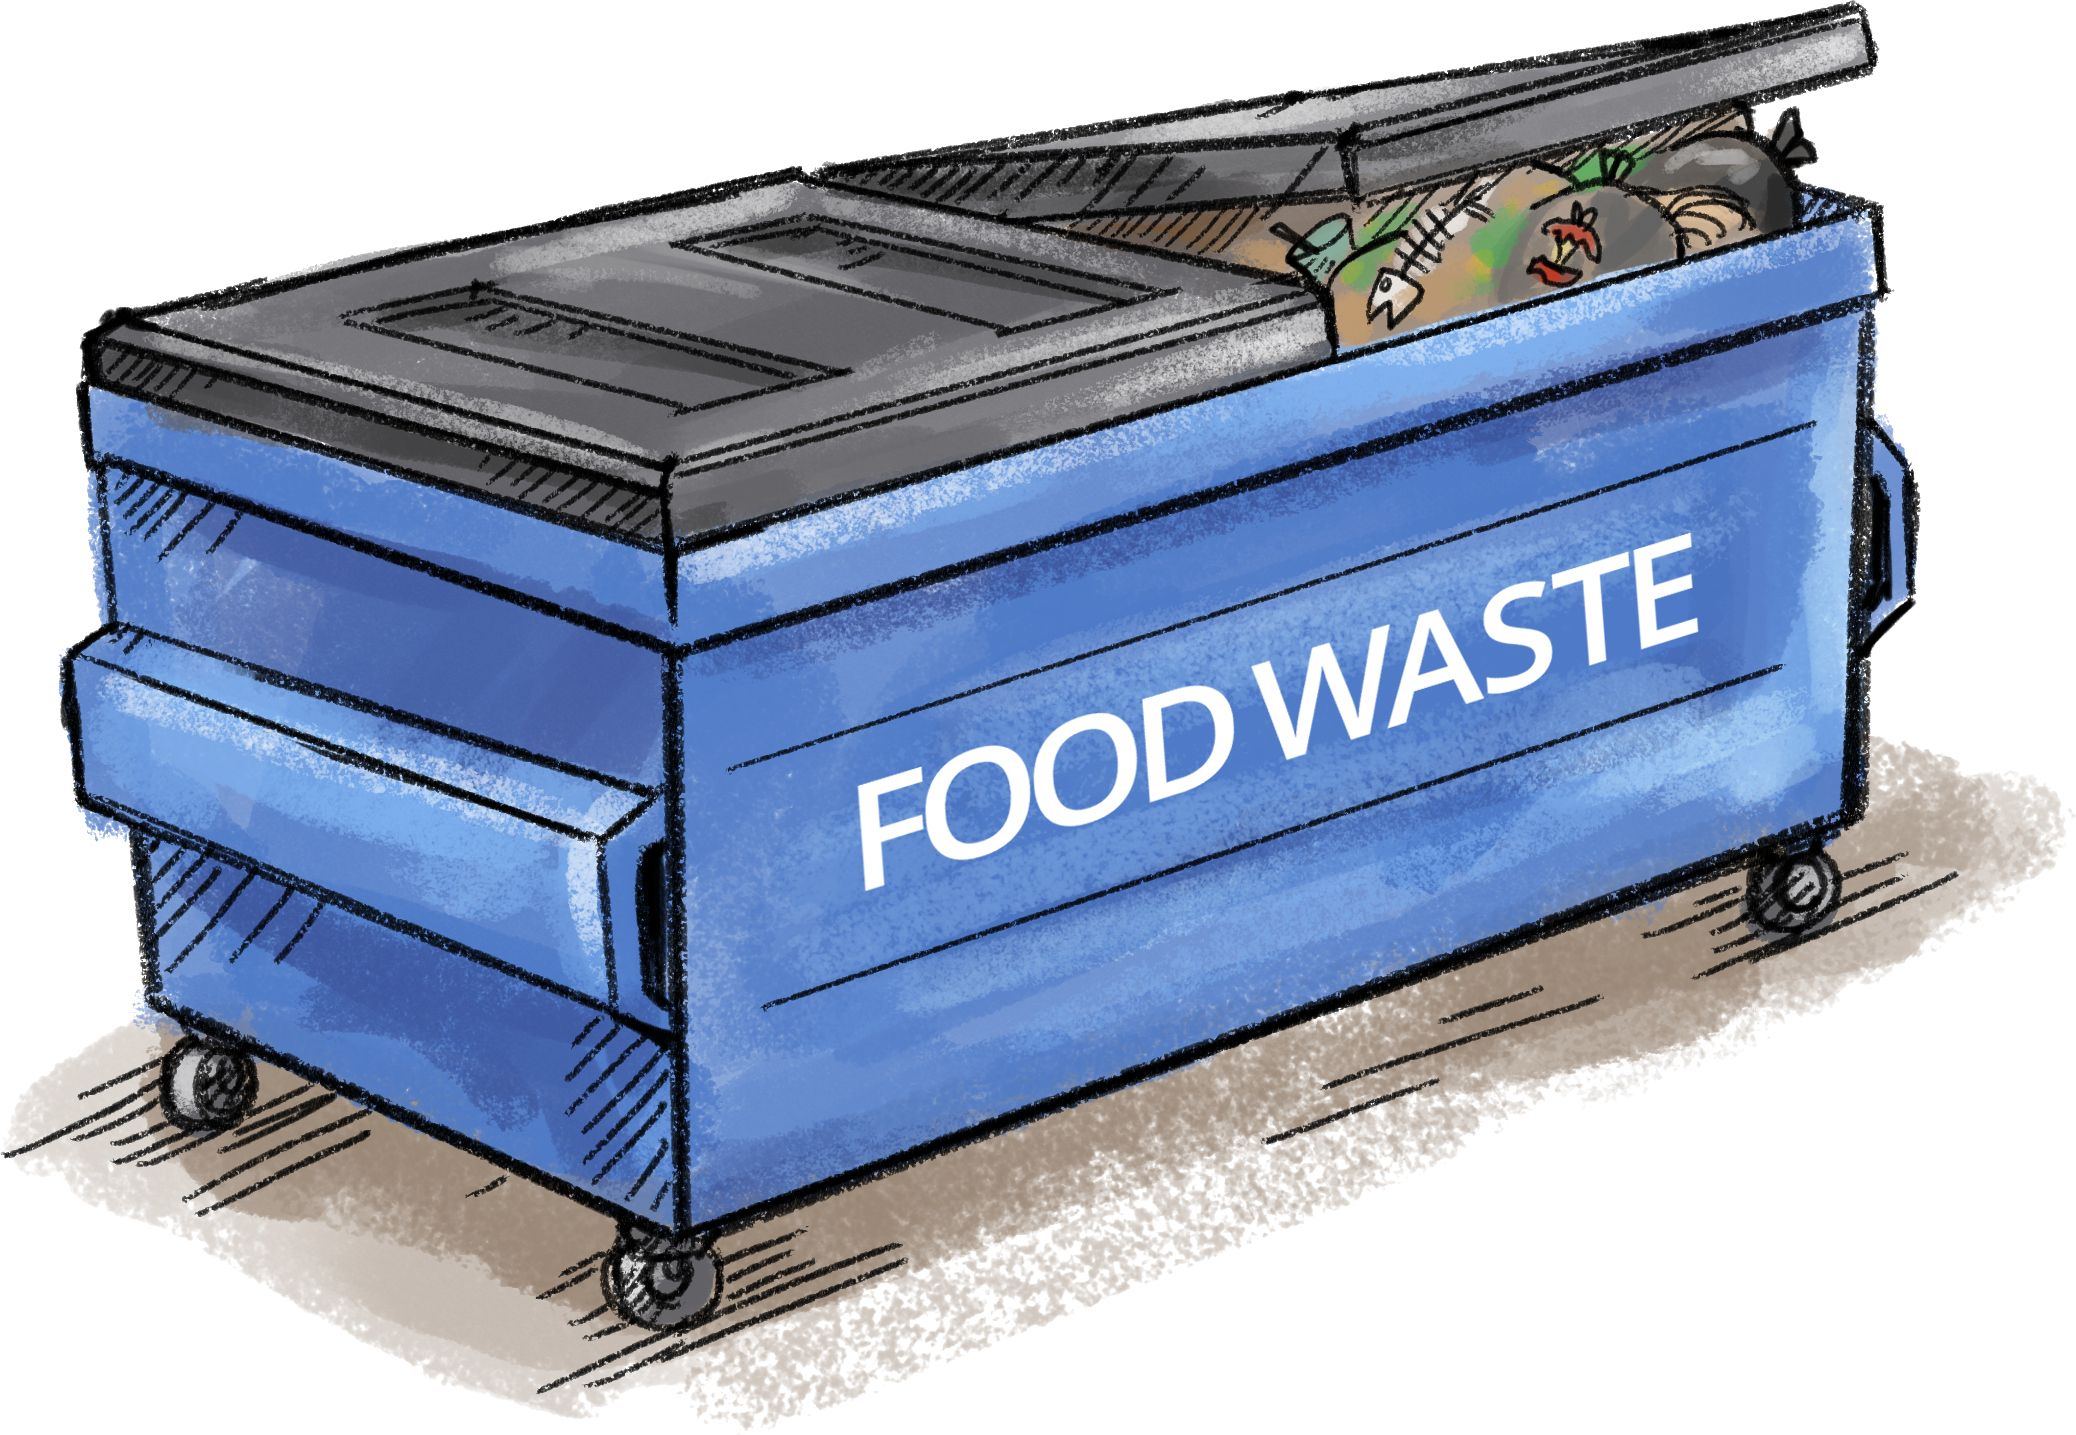 Garbage clipart organic waste. Food collection processing in